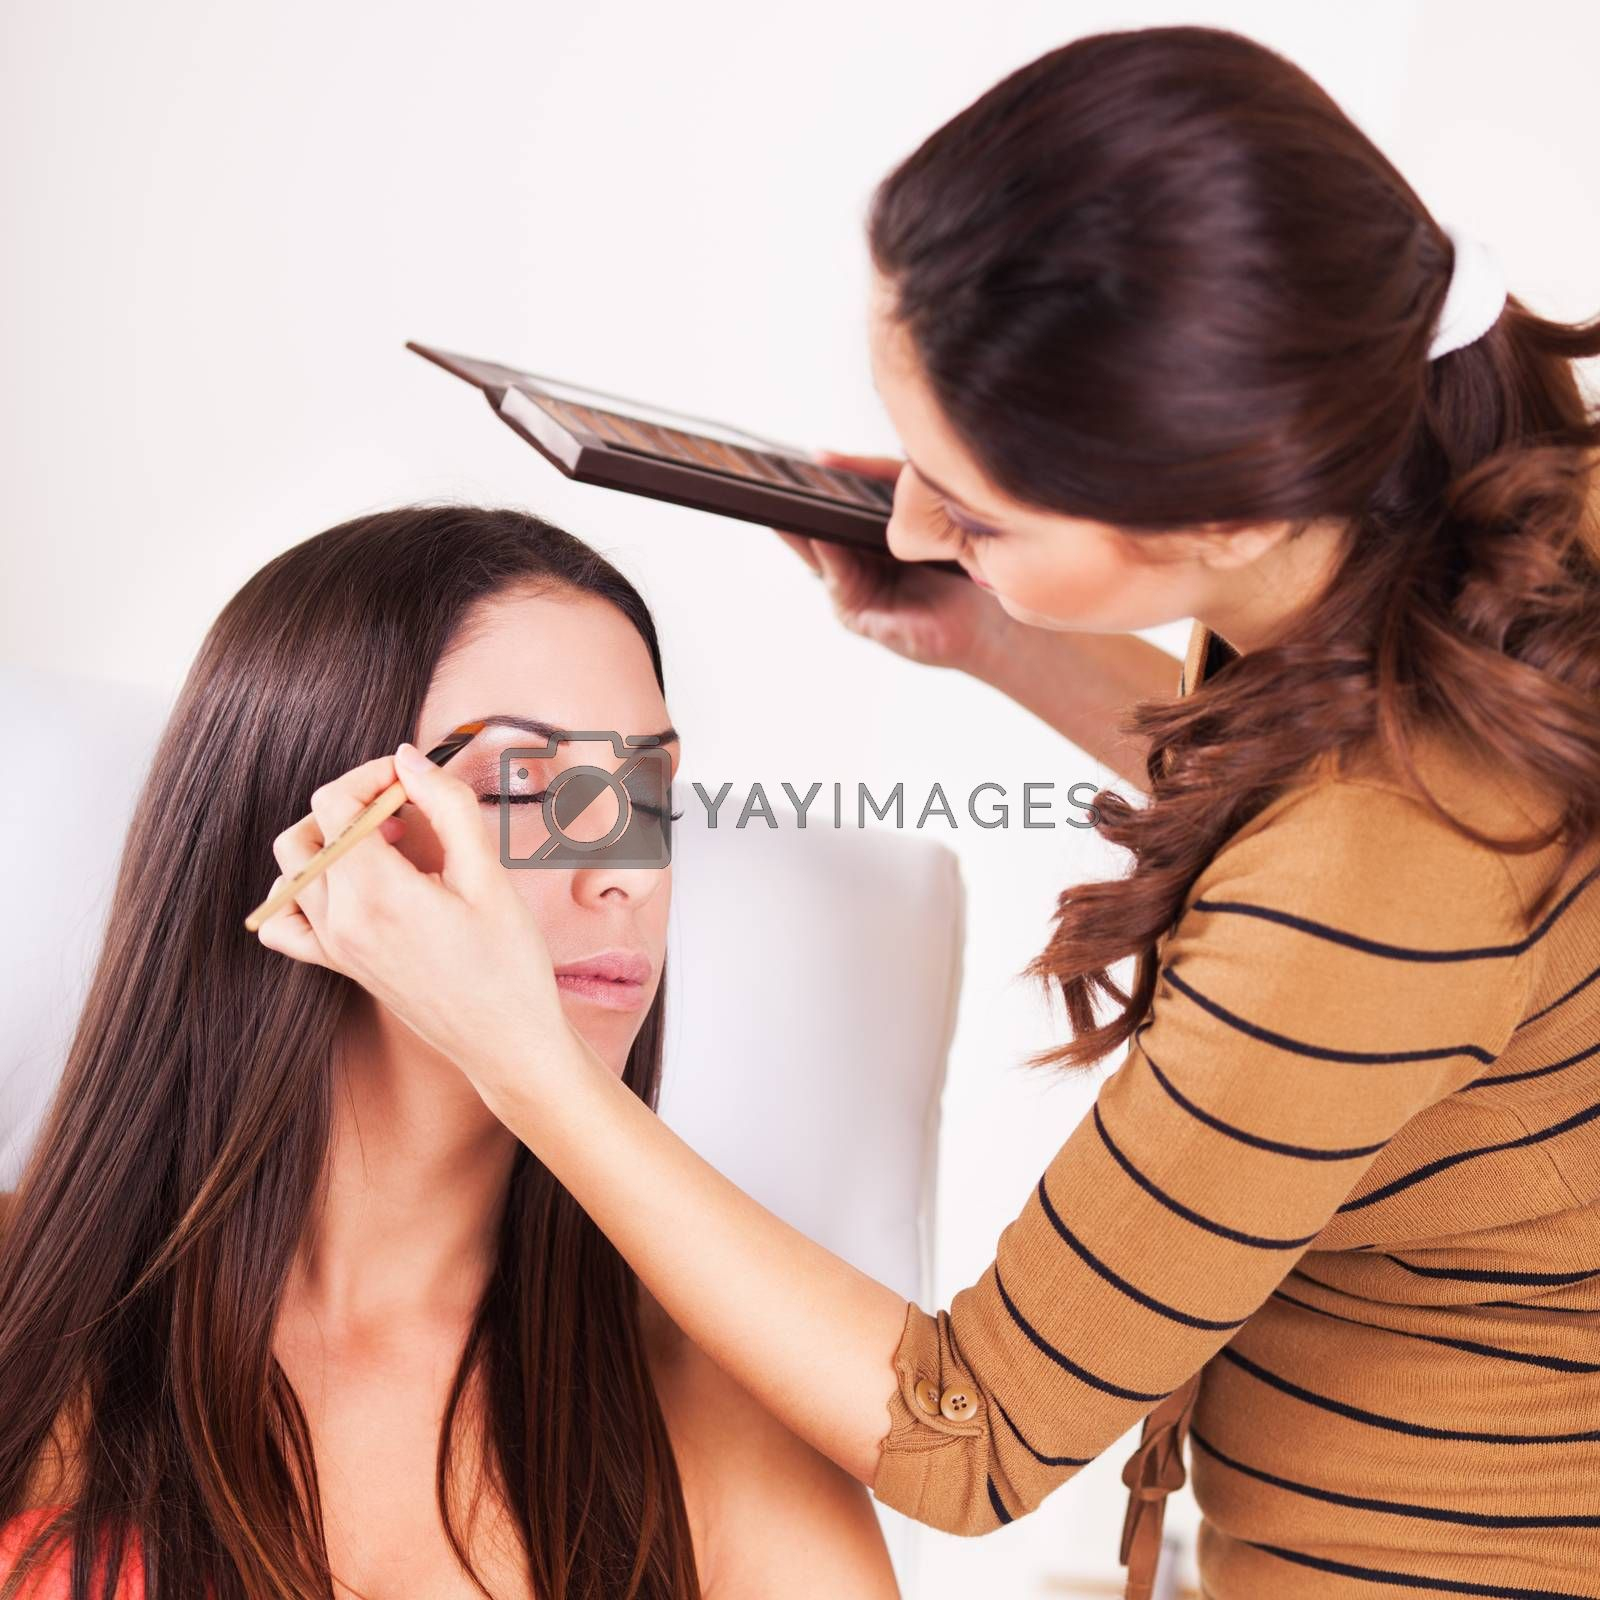 Female makeup artist darkening eyebrows with eyebrow pencil on Young Attractive woman.